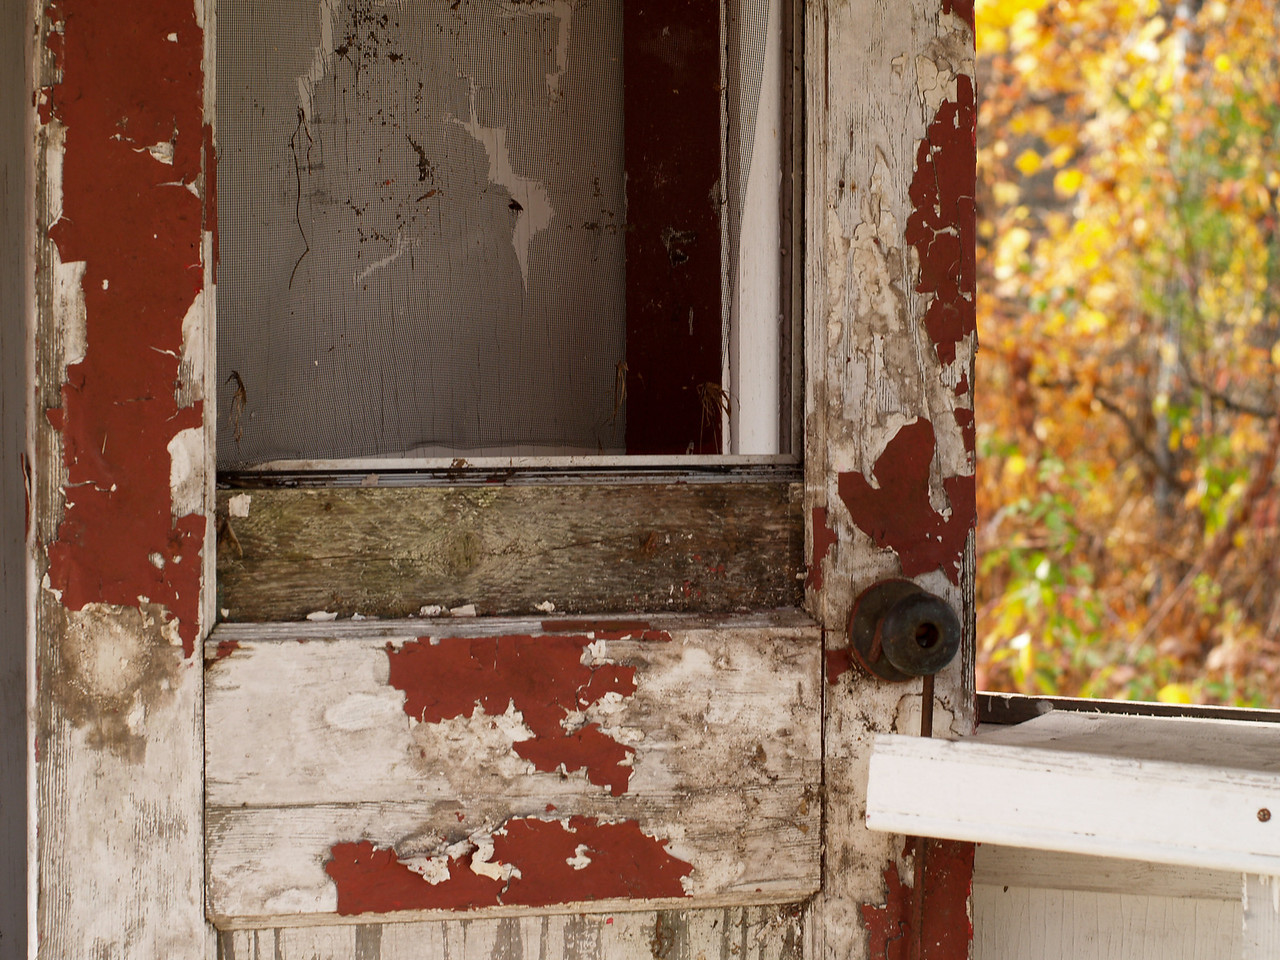 Decaying door of the Benson's ticket booth